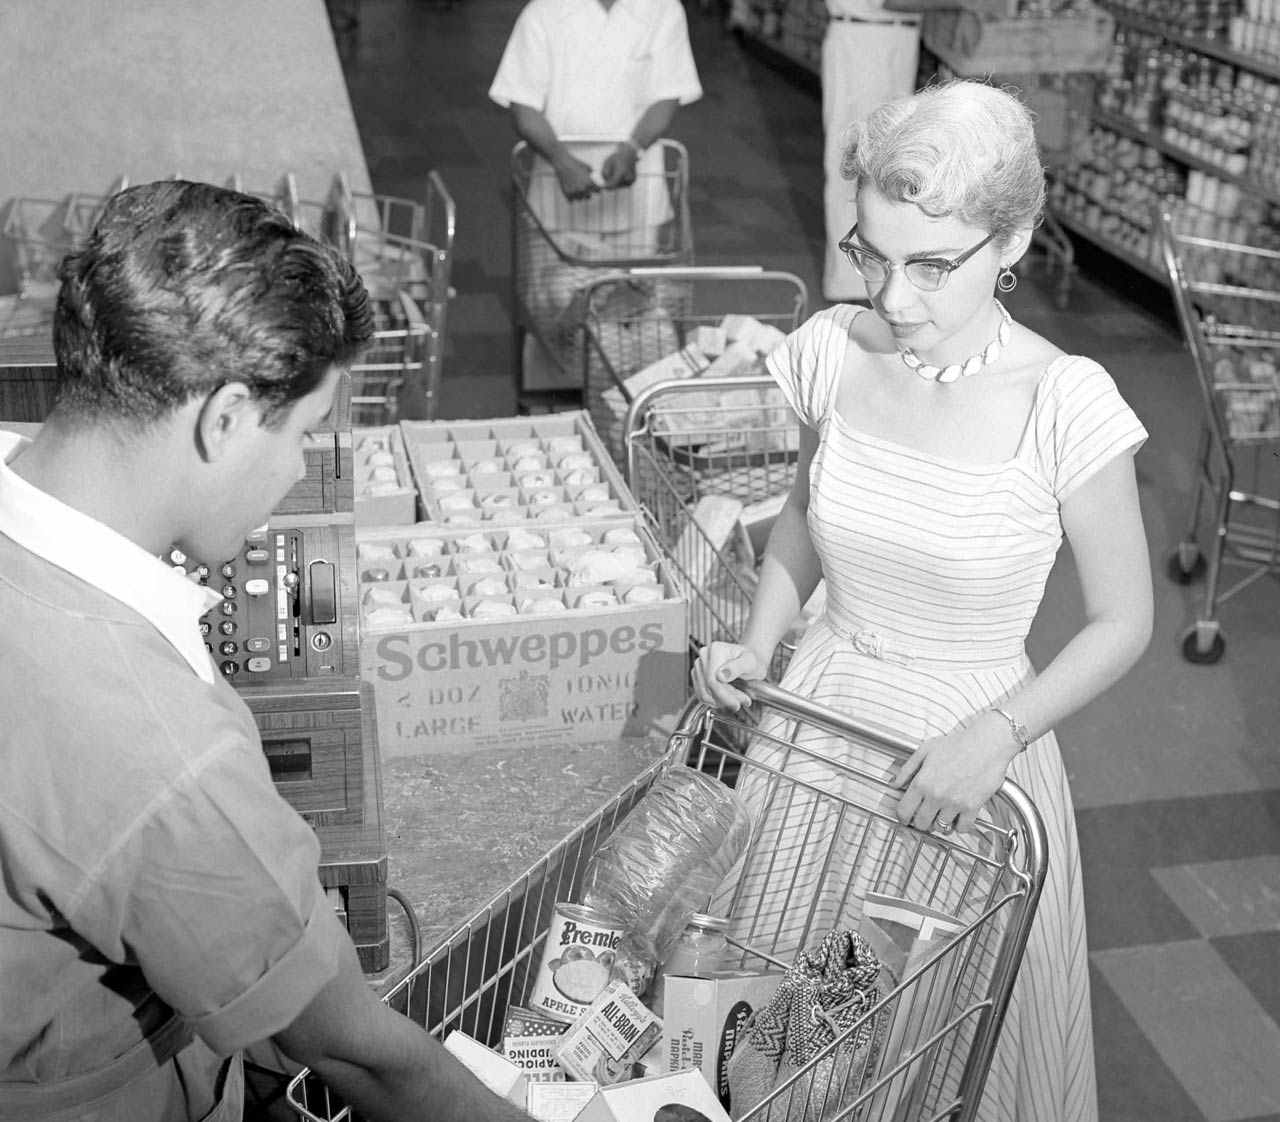 Dhahran The Family Issue Store in 1955